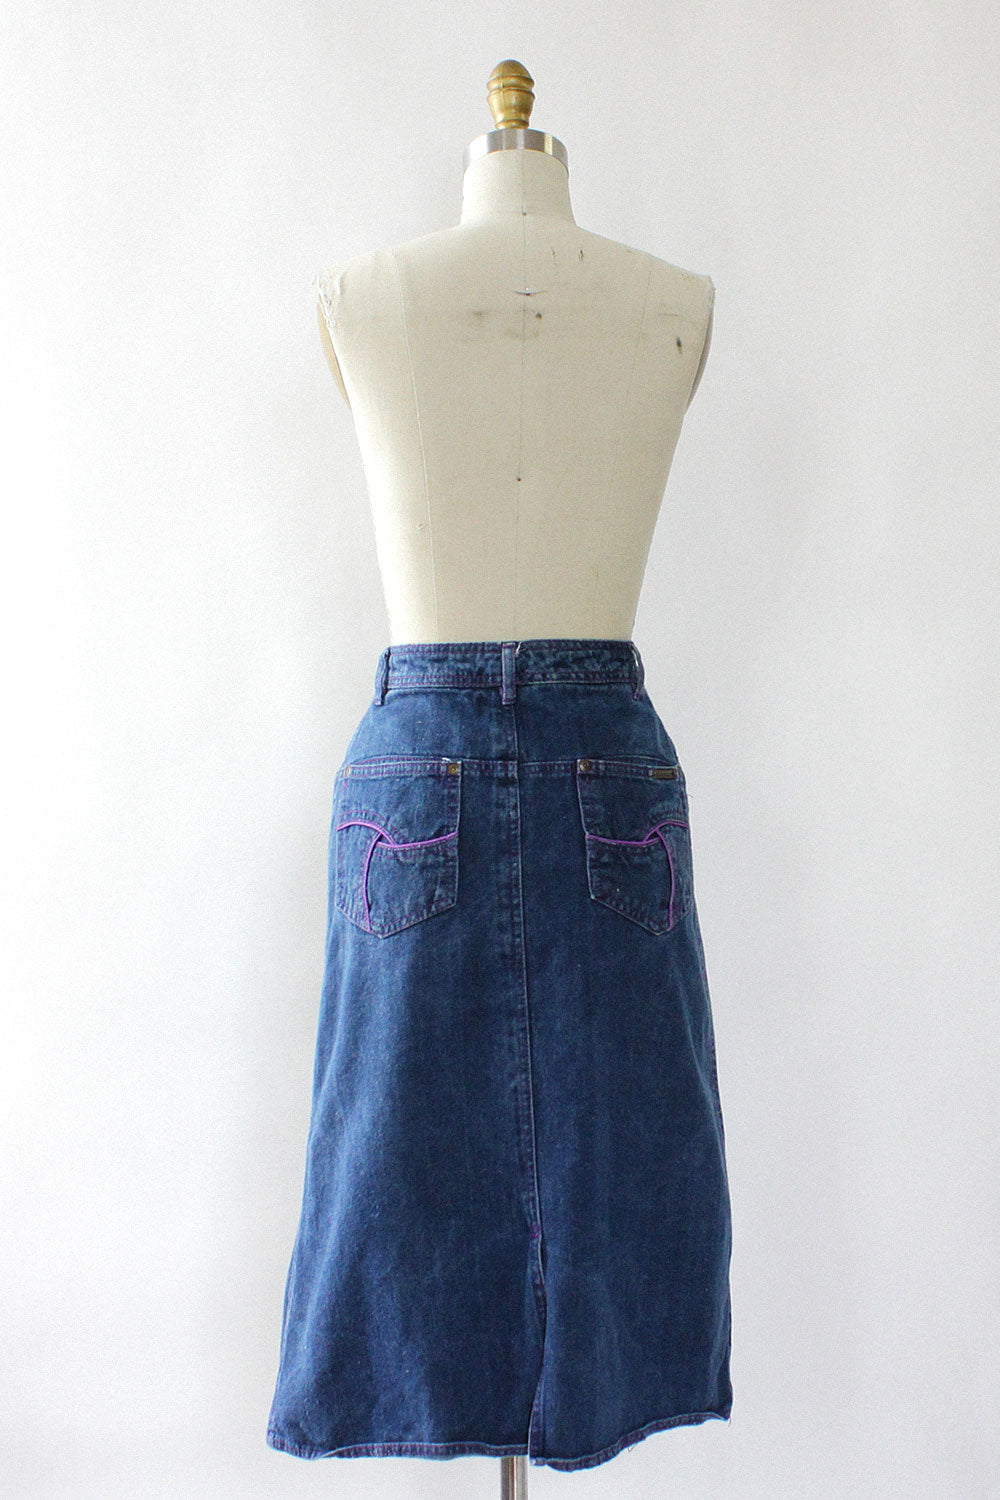 Rolling Wheels Denim Skirt XS/S